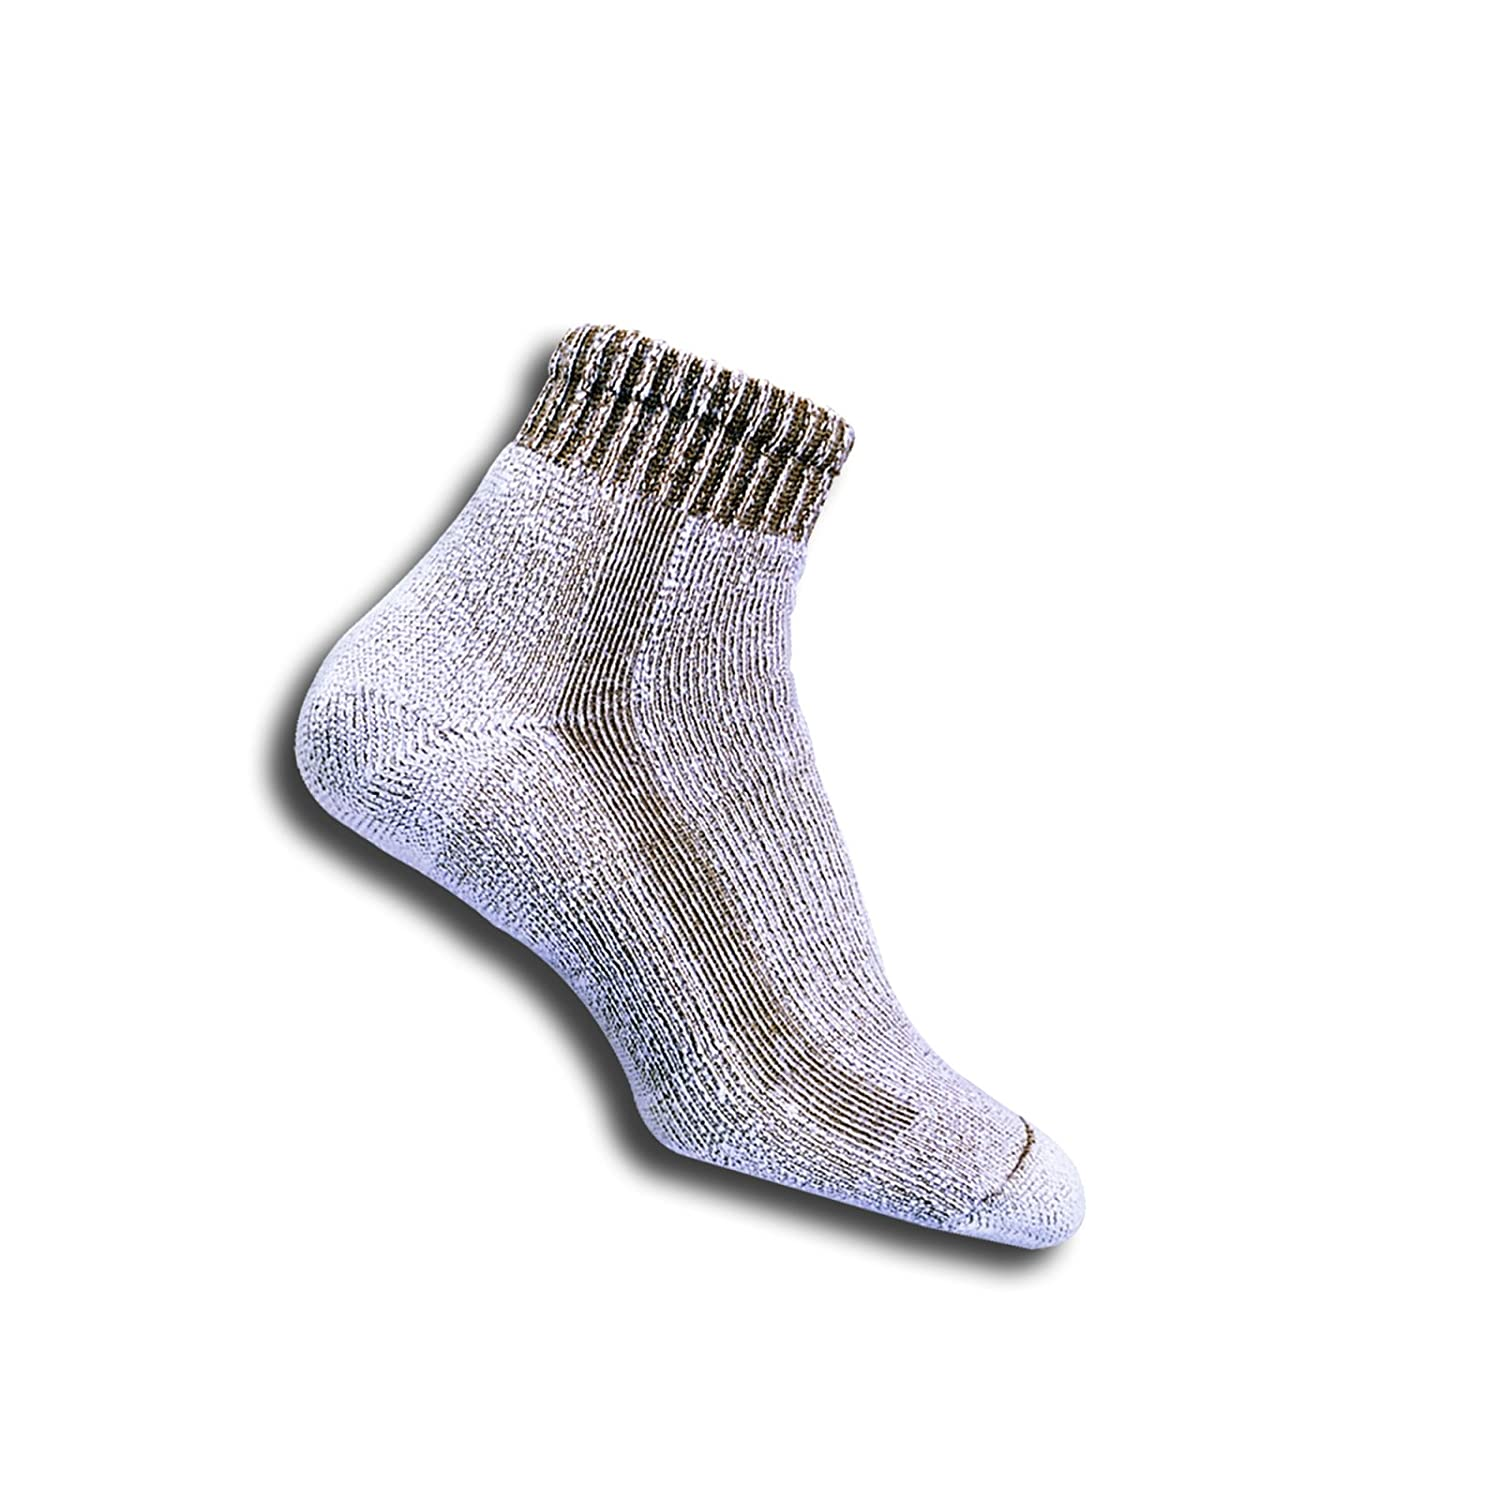 Thorlos MenS Moderate Cushion Lt Hiker Mini Crew with a Helicase Sock Ring